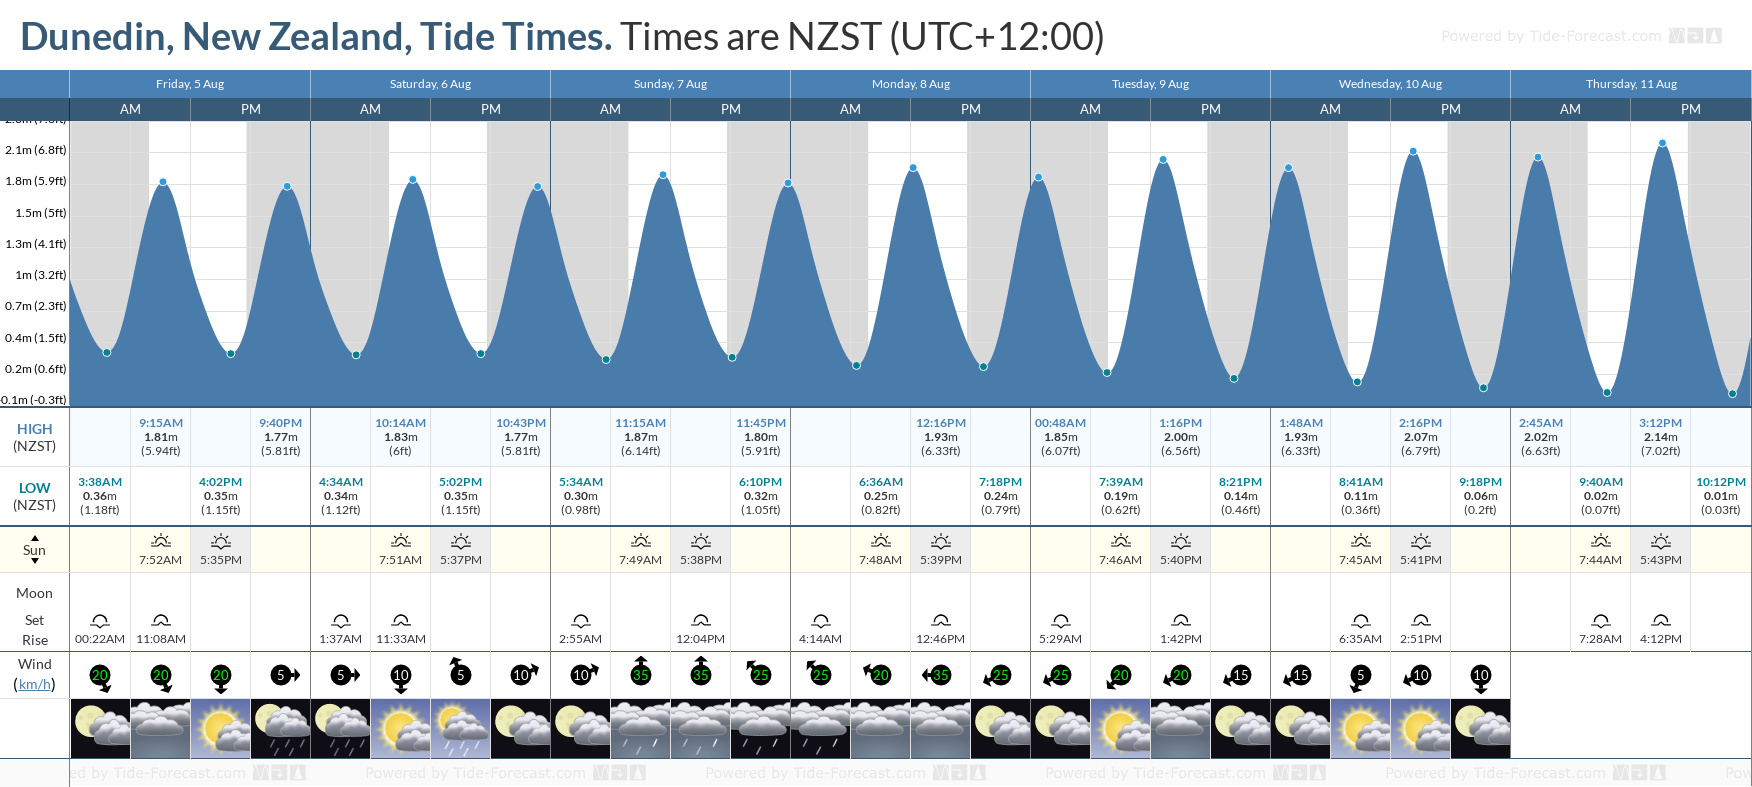 Dunedin, New Zealand Tide Chart including high and low tide tide times for the next 7 days